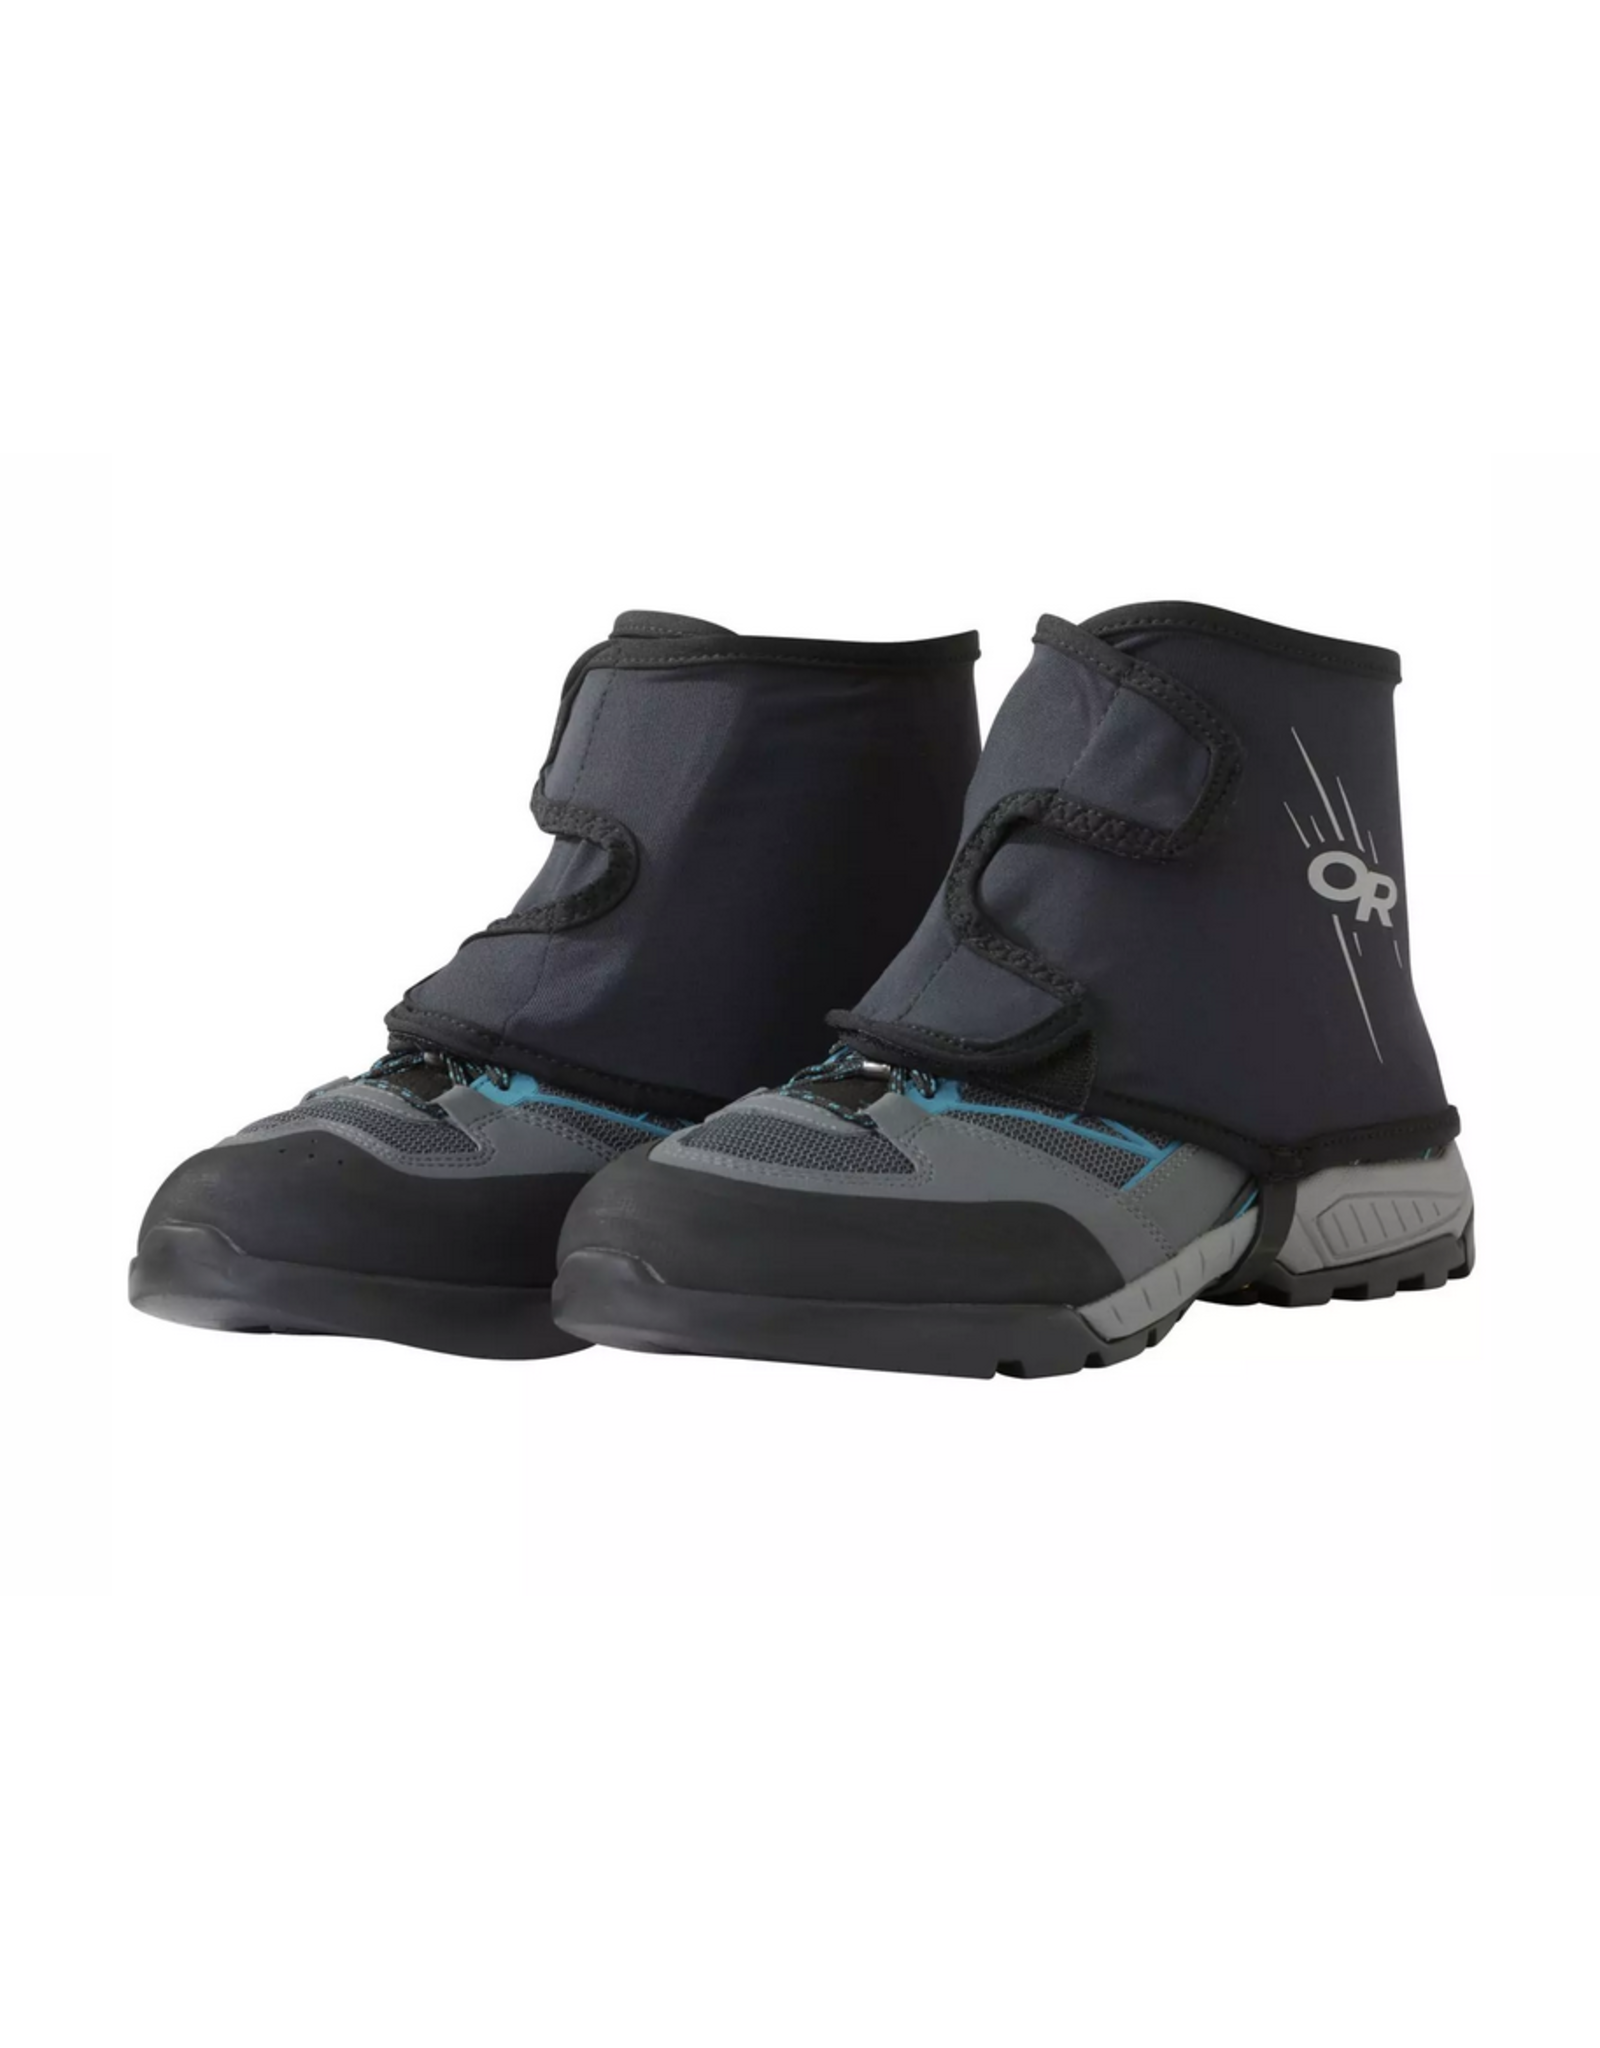 Outdoor Research Outdoor Research Overdrive Wrap Gaiters